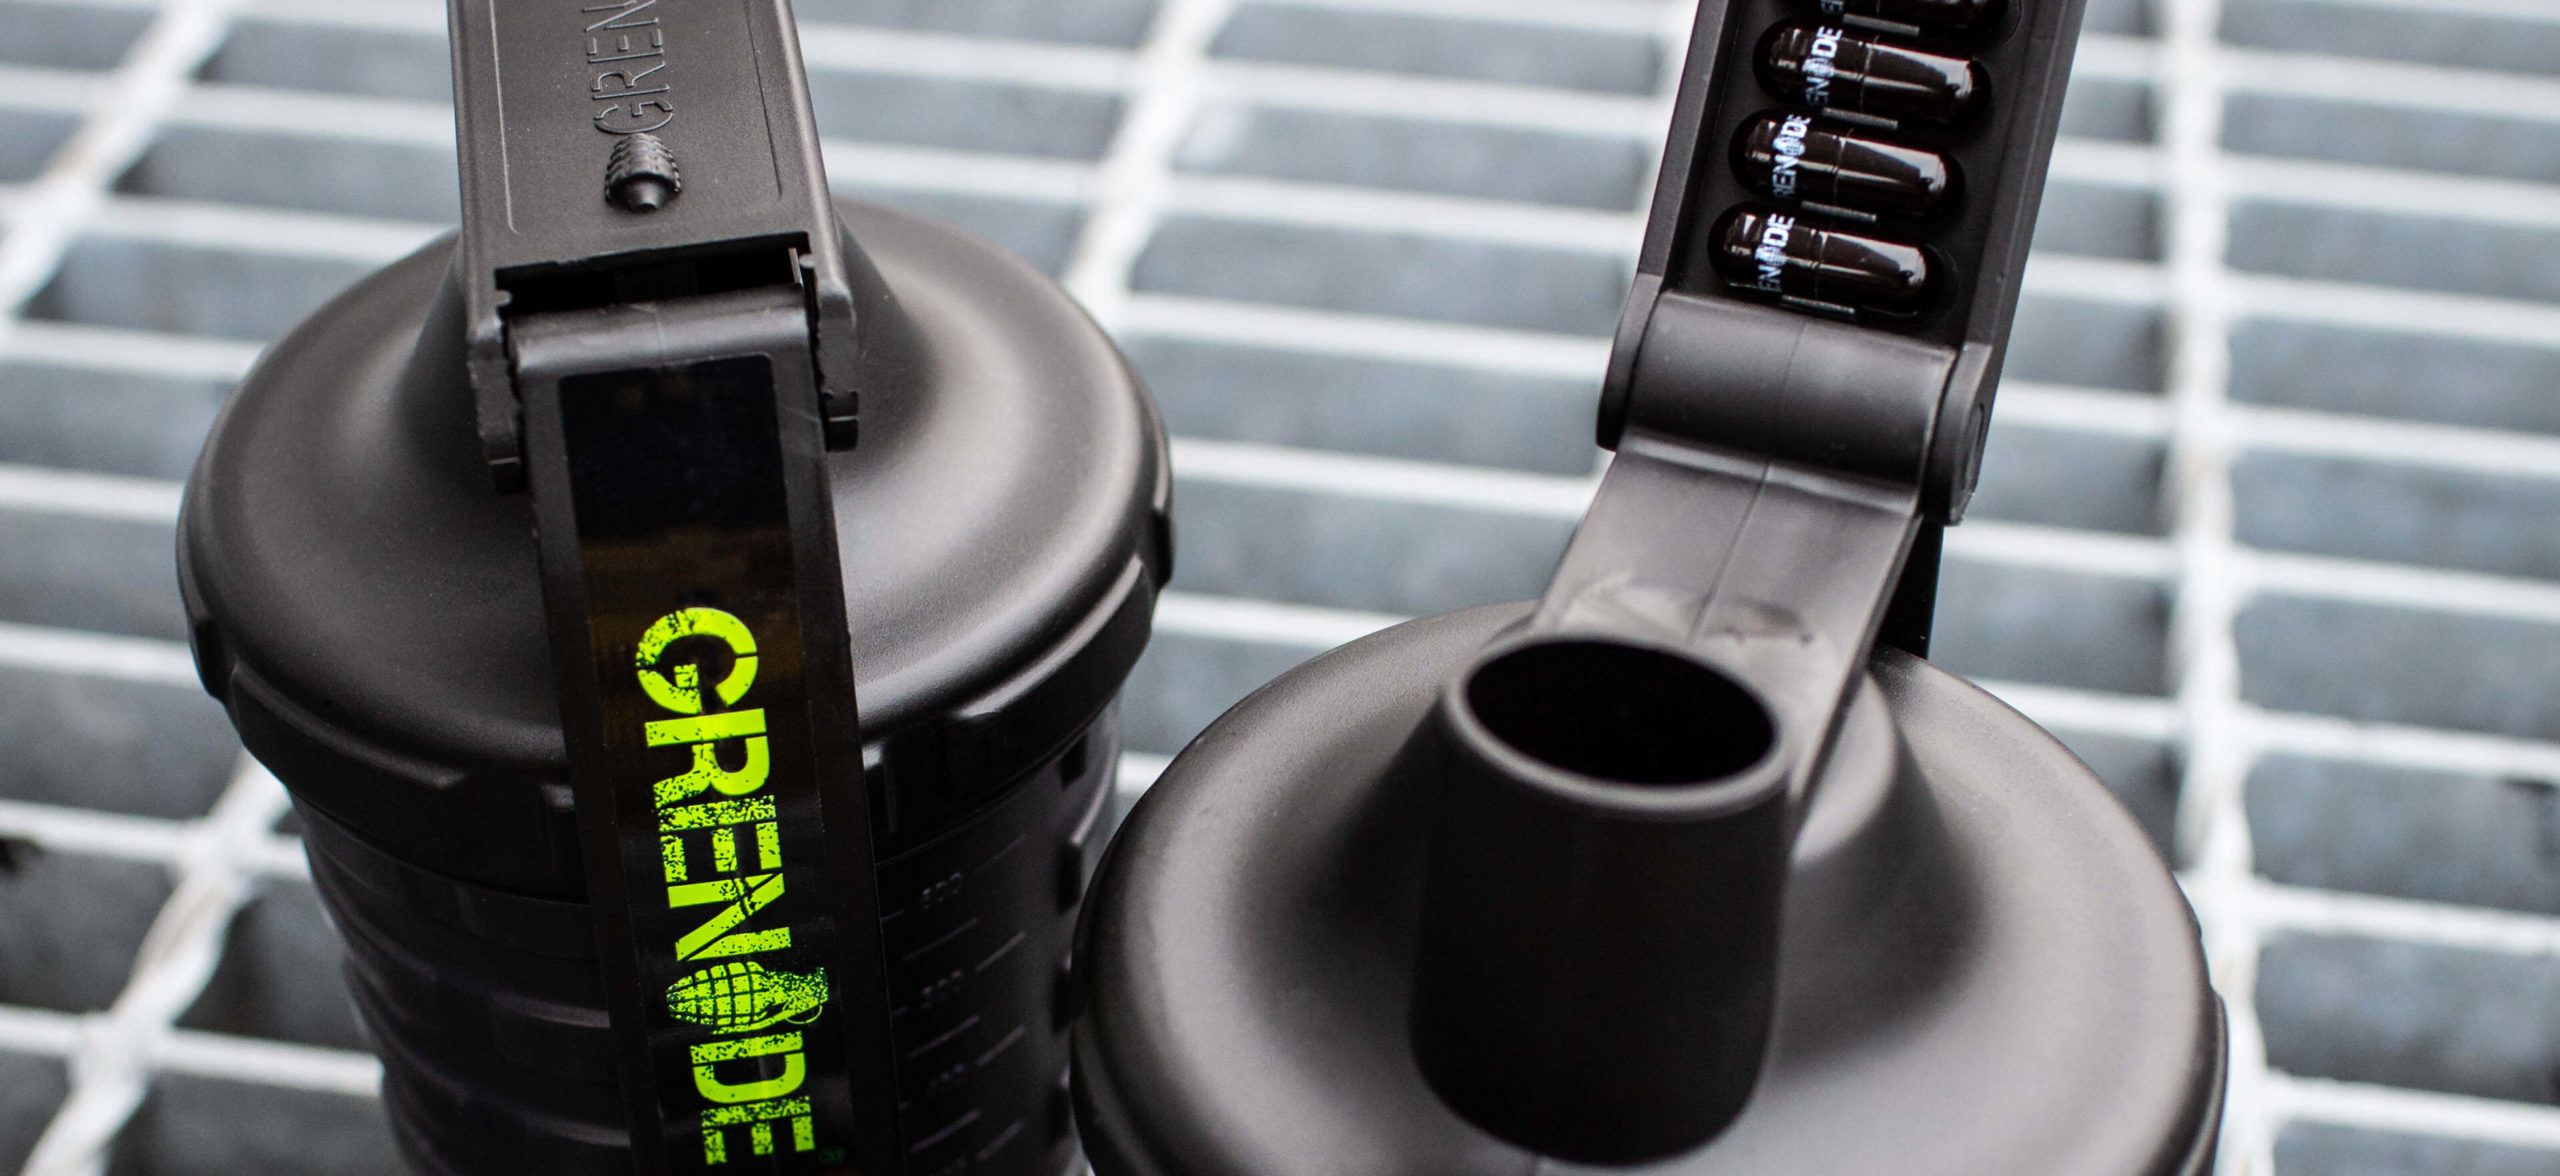 Supplements in Grenade shaker